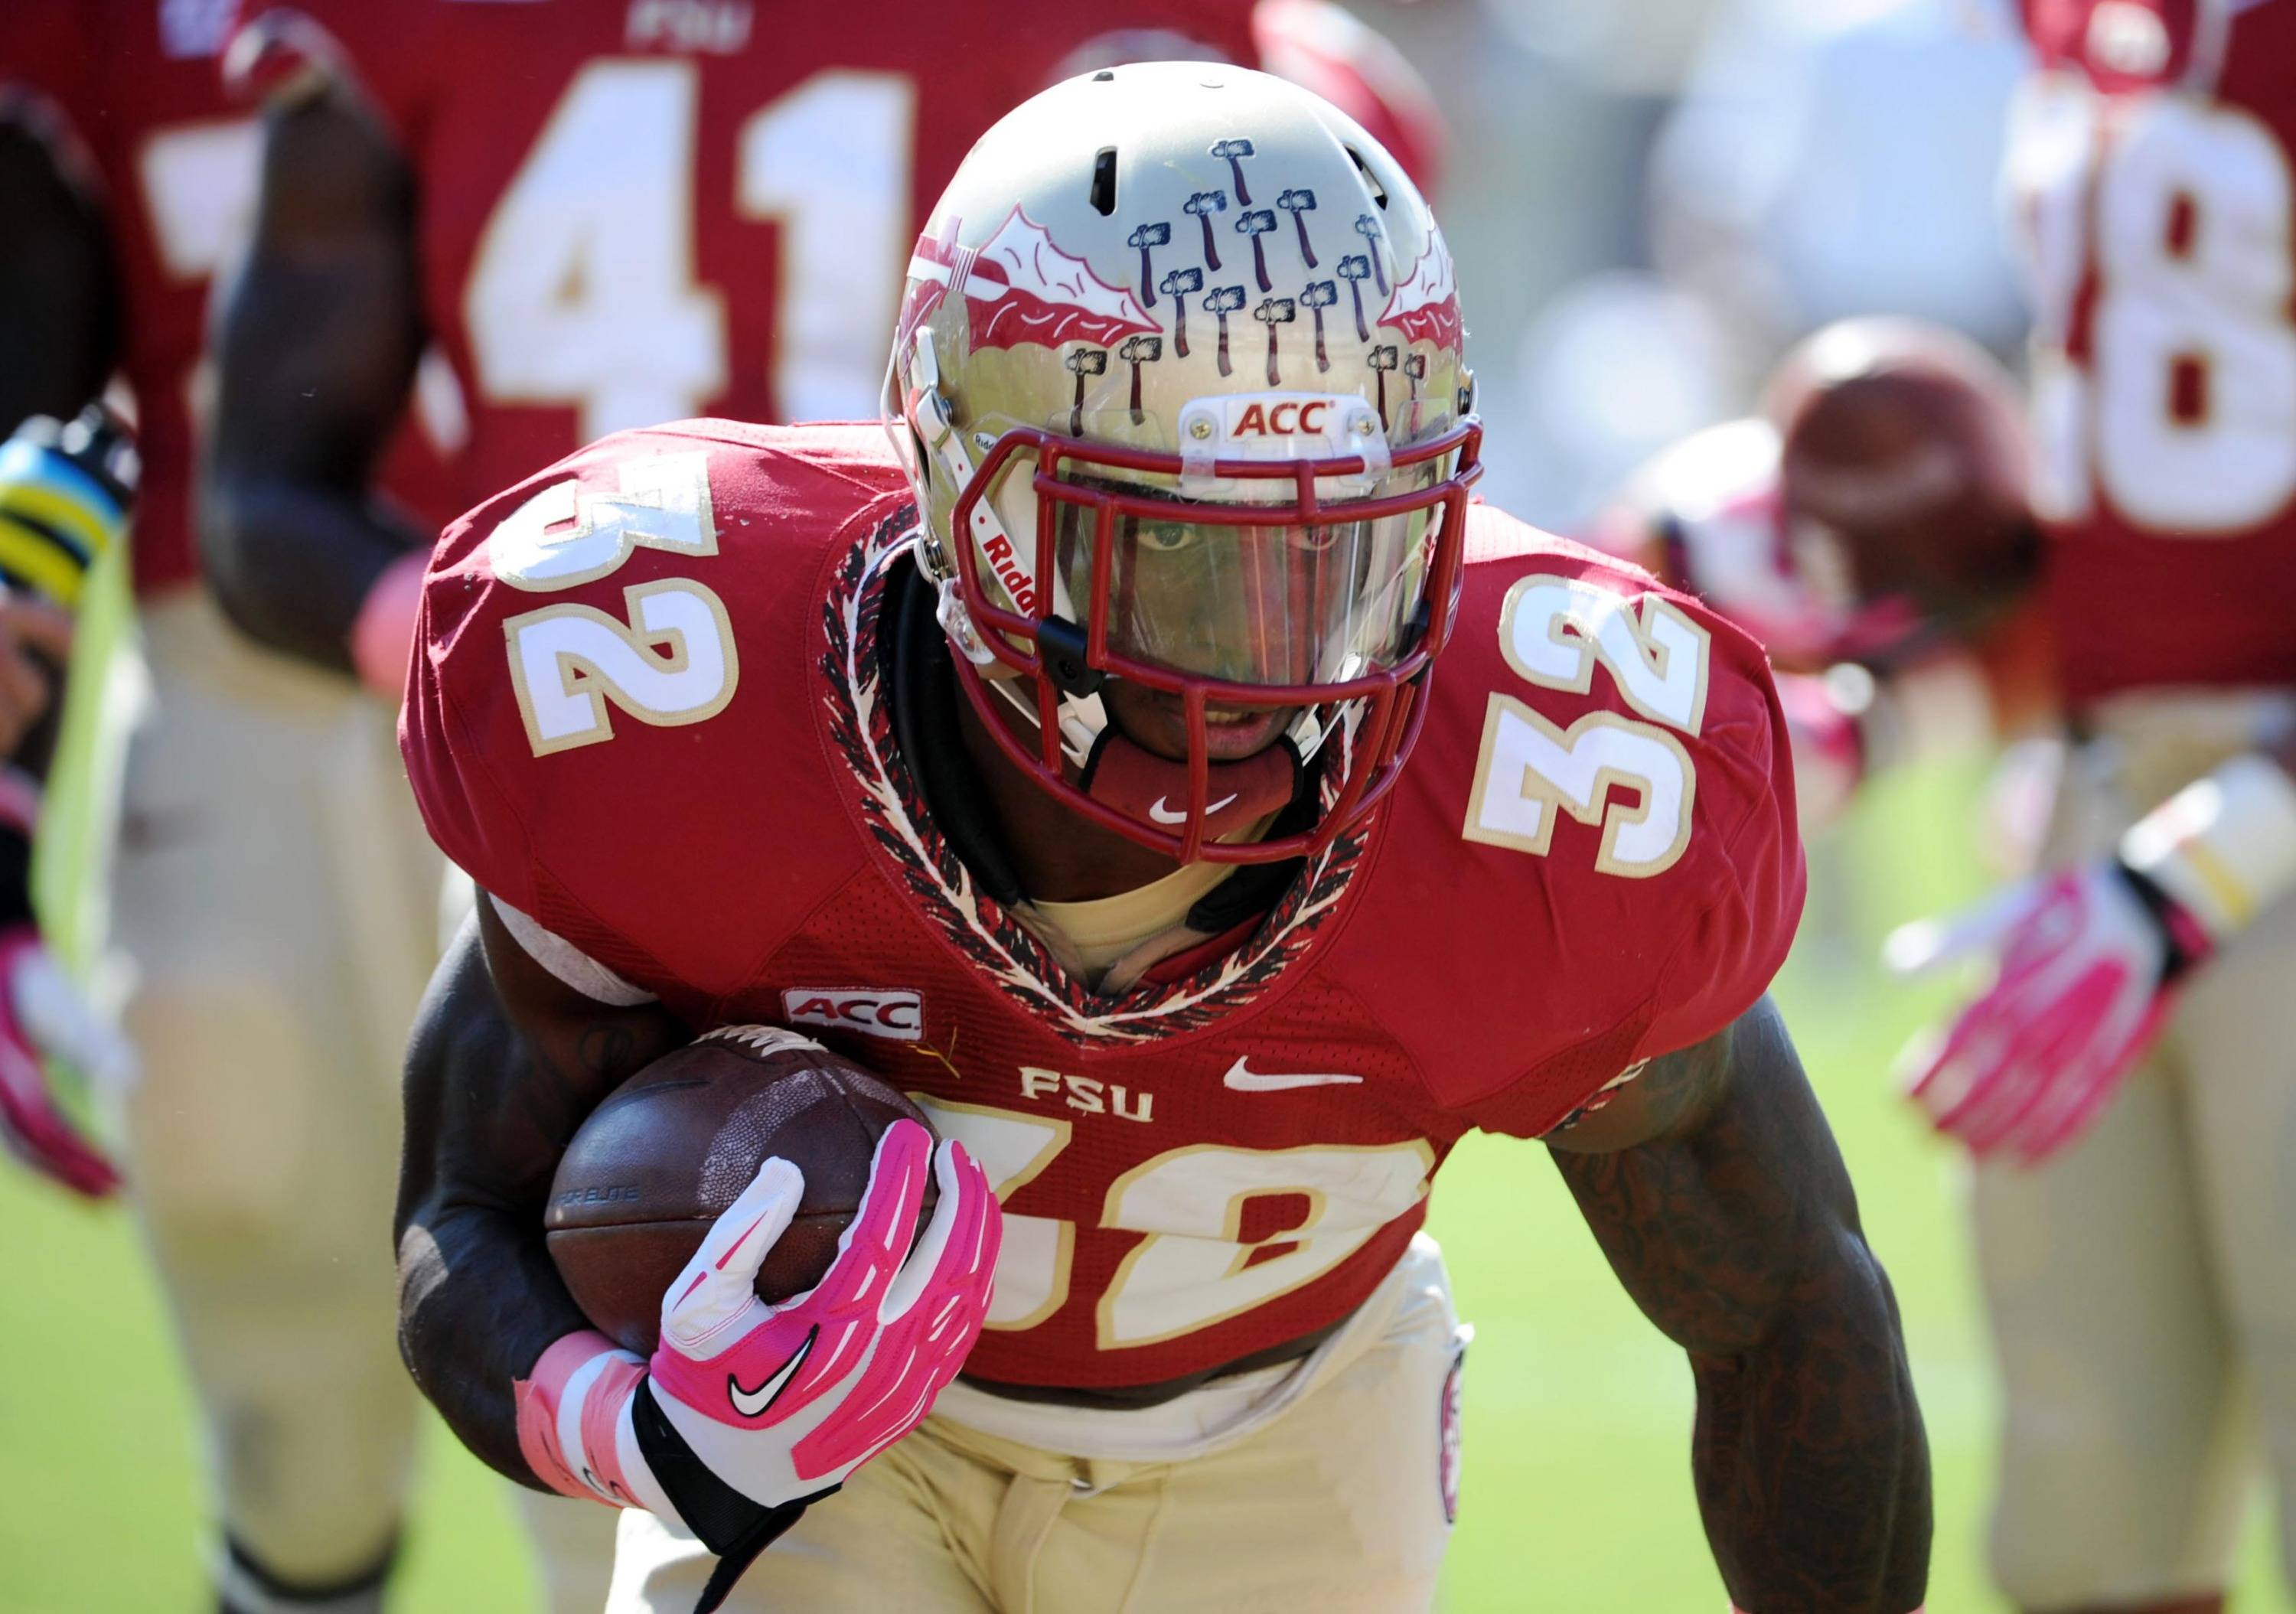 Seminoles running back James Wilder Jr. (32) warms up before the start of the game. Mandatory Credit: Melina Vastola-USA TODAY Sports